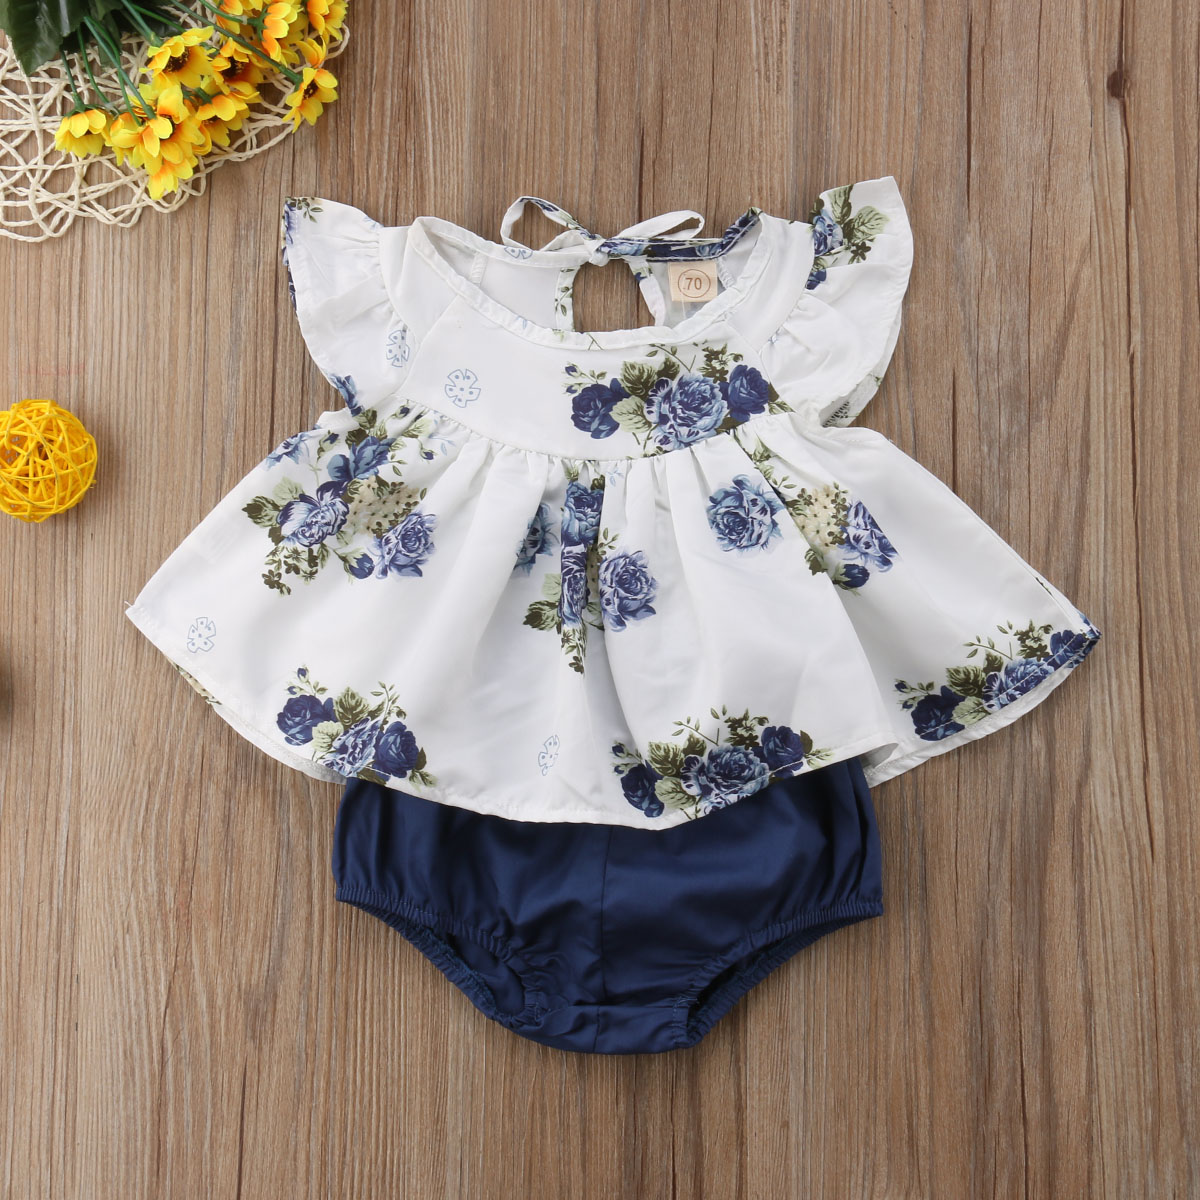 Pudcoco Newborn Baby Girl Clothes Flower Print Sleeveless Dress Tops Short Pants 2Pcs Outfits Cotton Clothes